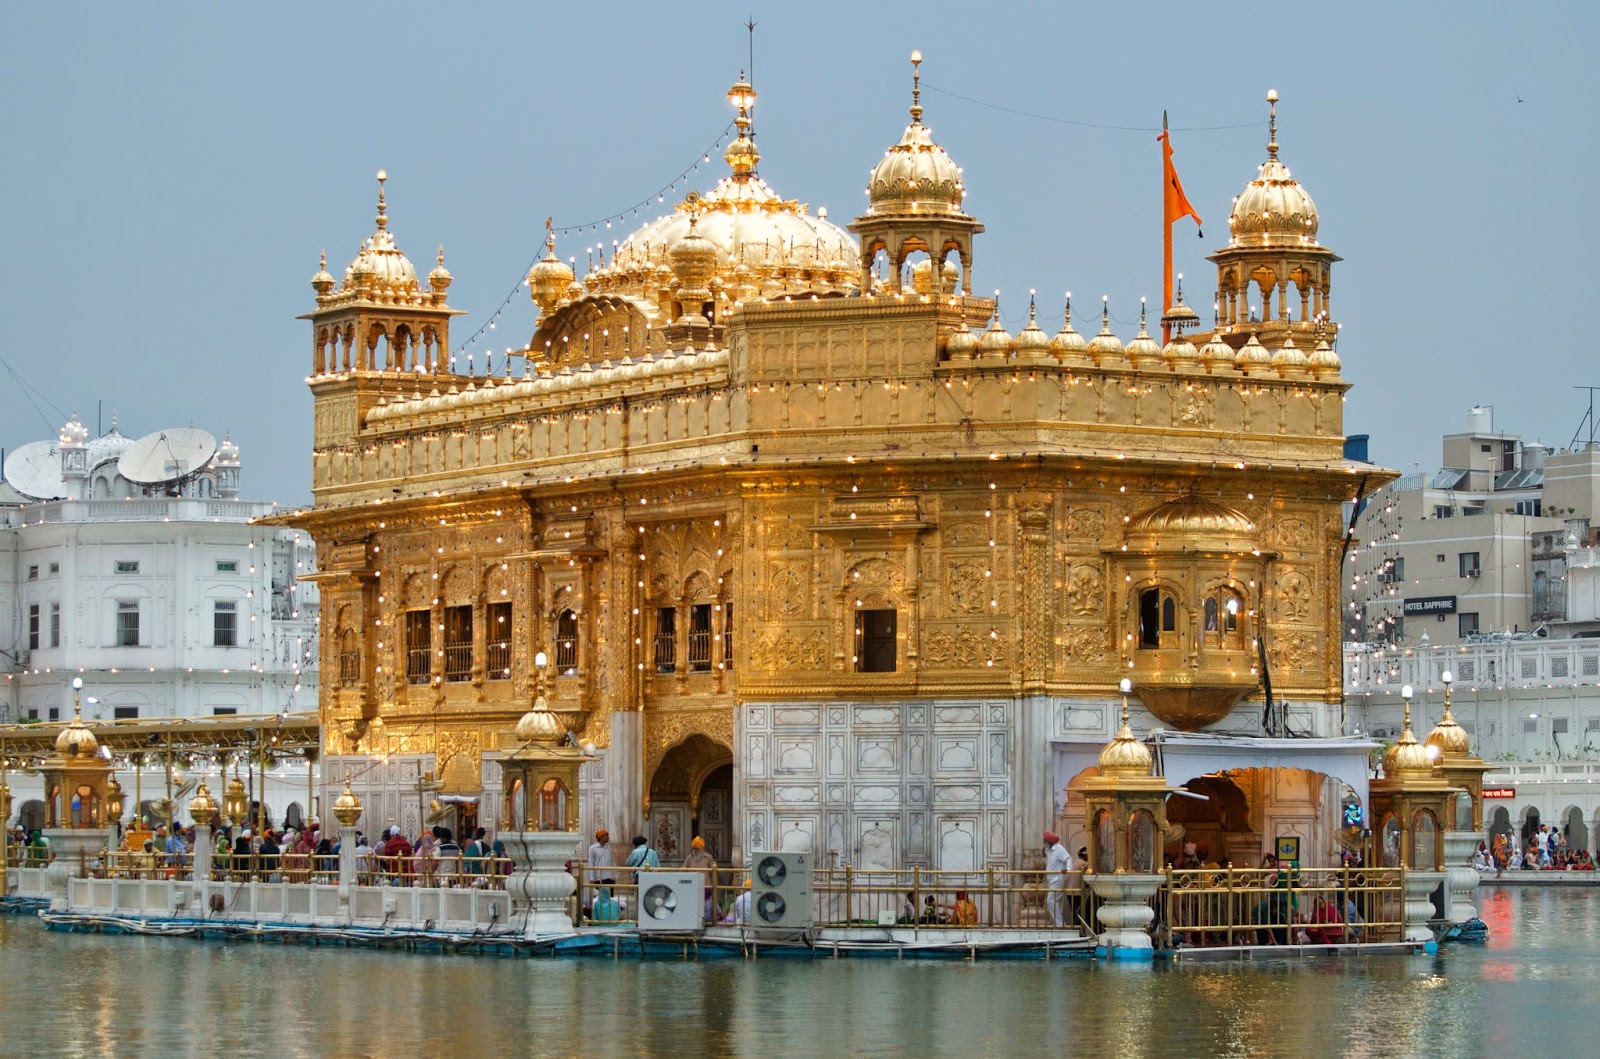 believed it india there whole and golden of amritsar the now even made no much southern using in kg thousand build quantity which is has up world gold en temple by this see that